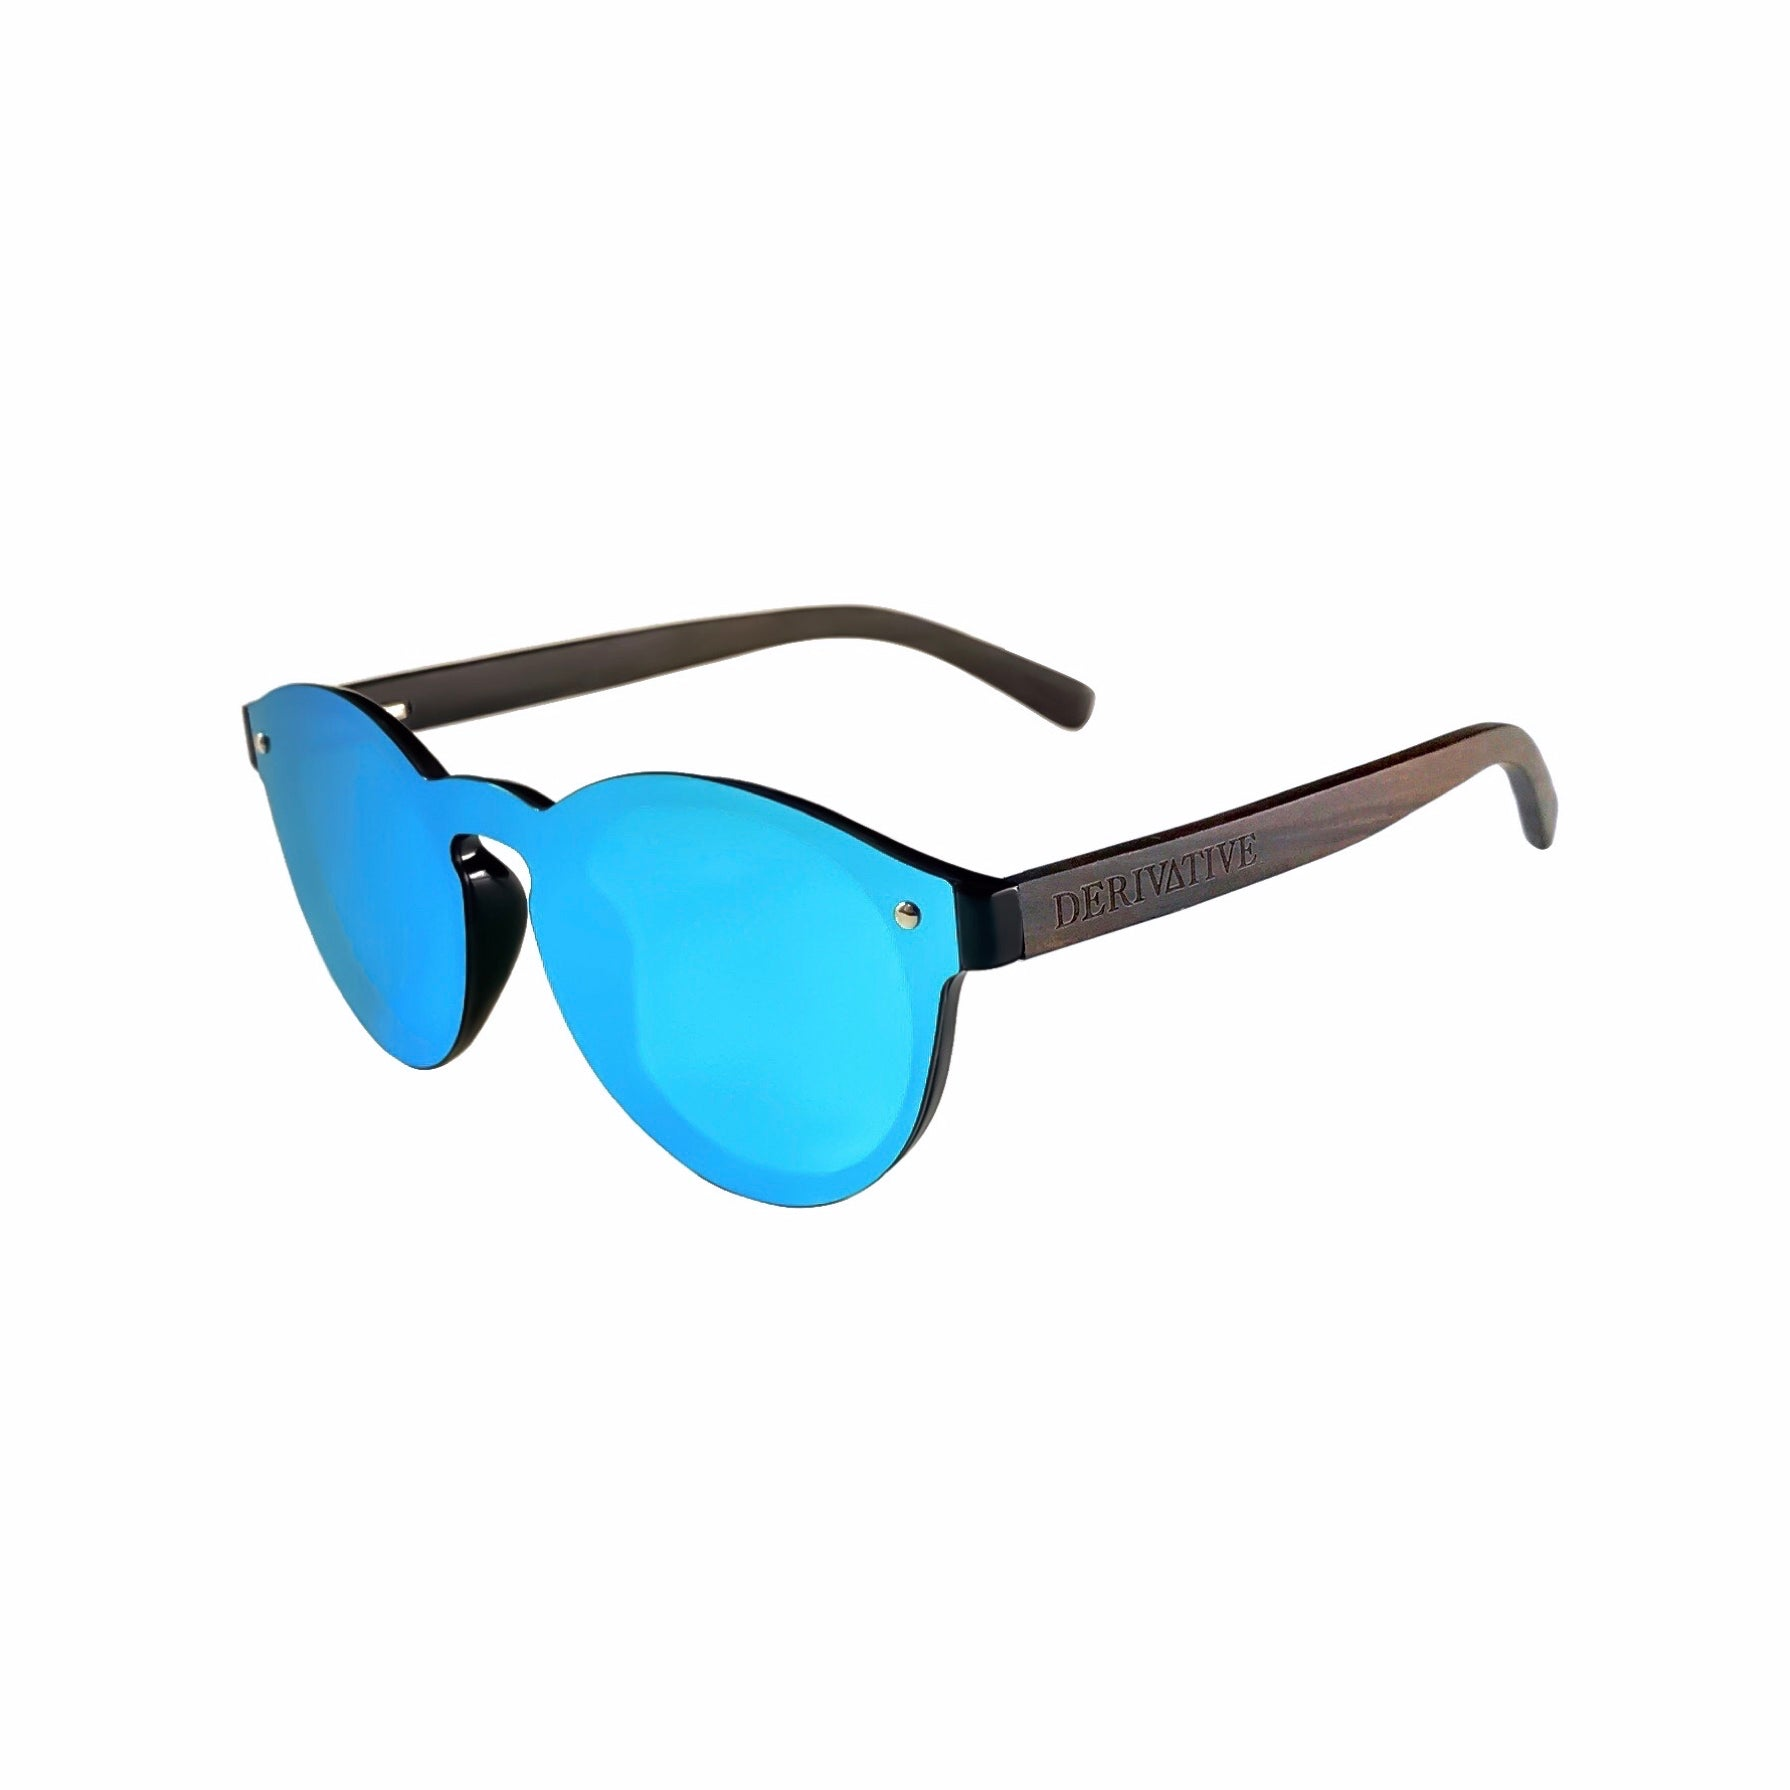 Blue round rimless sunglasses by derivative